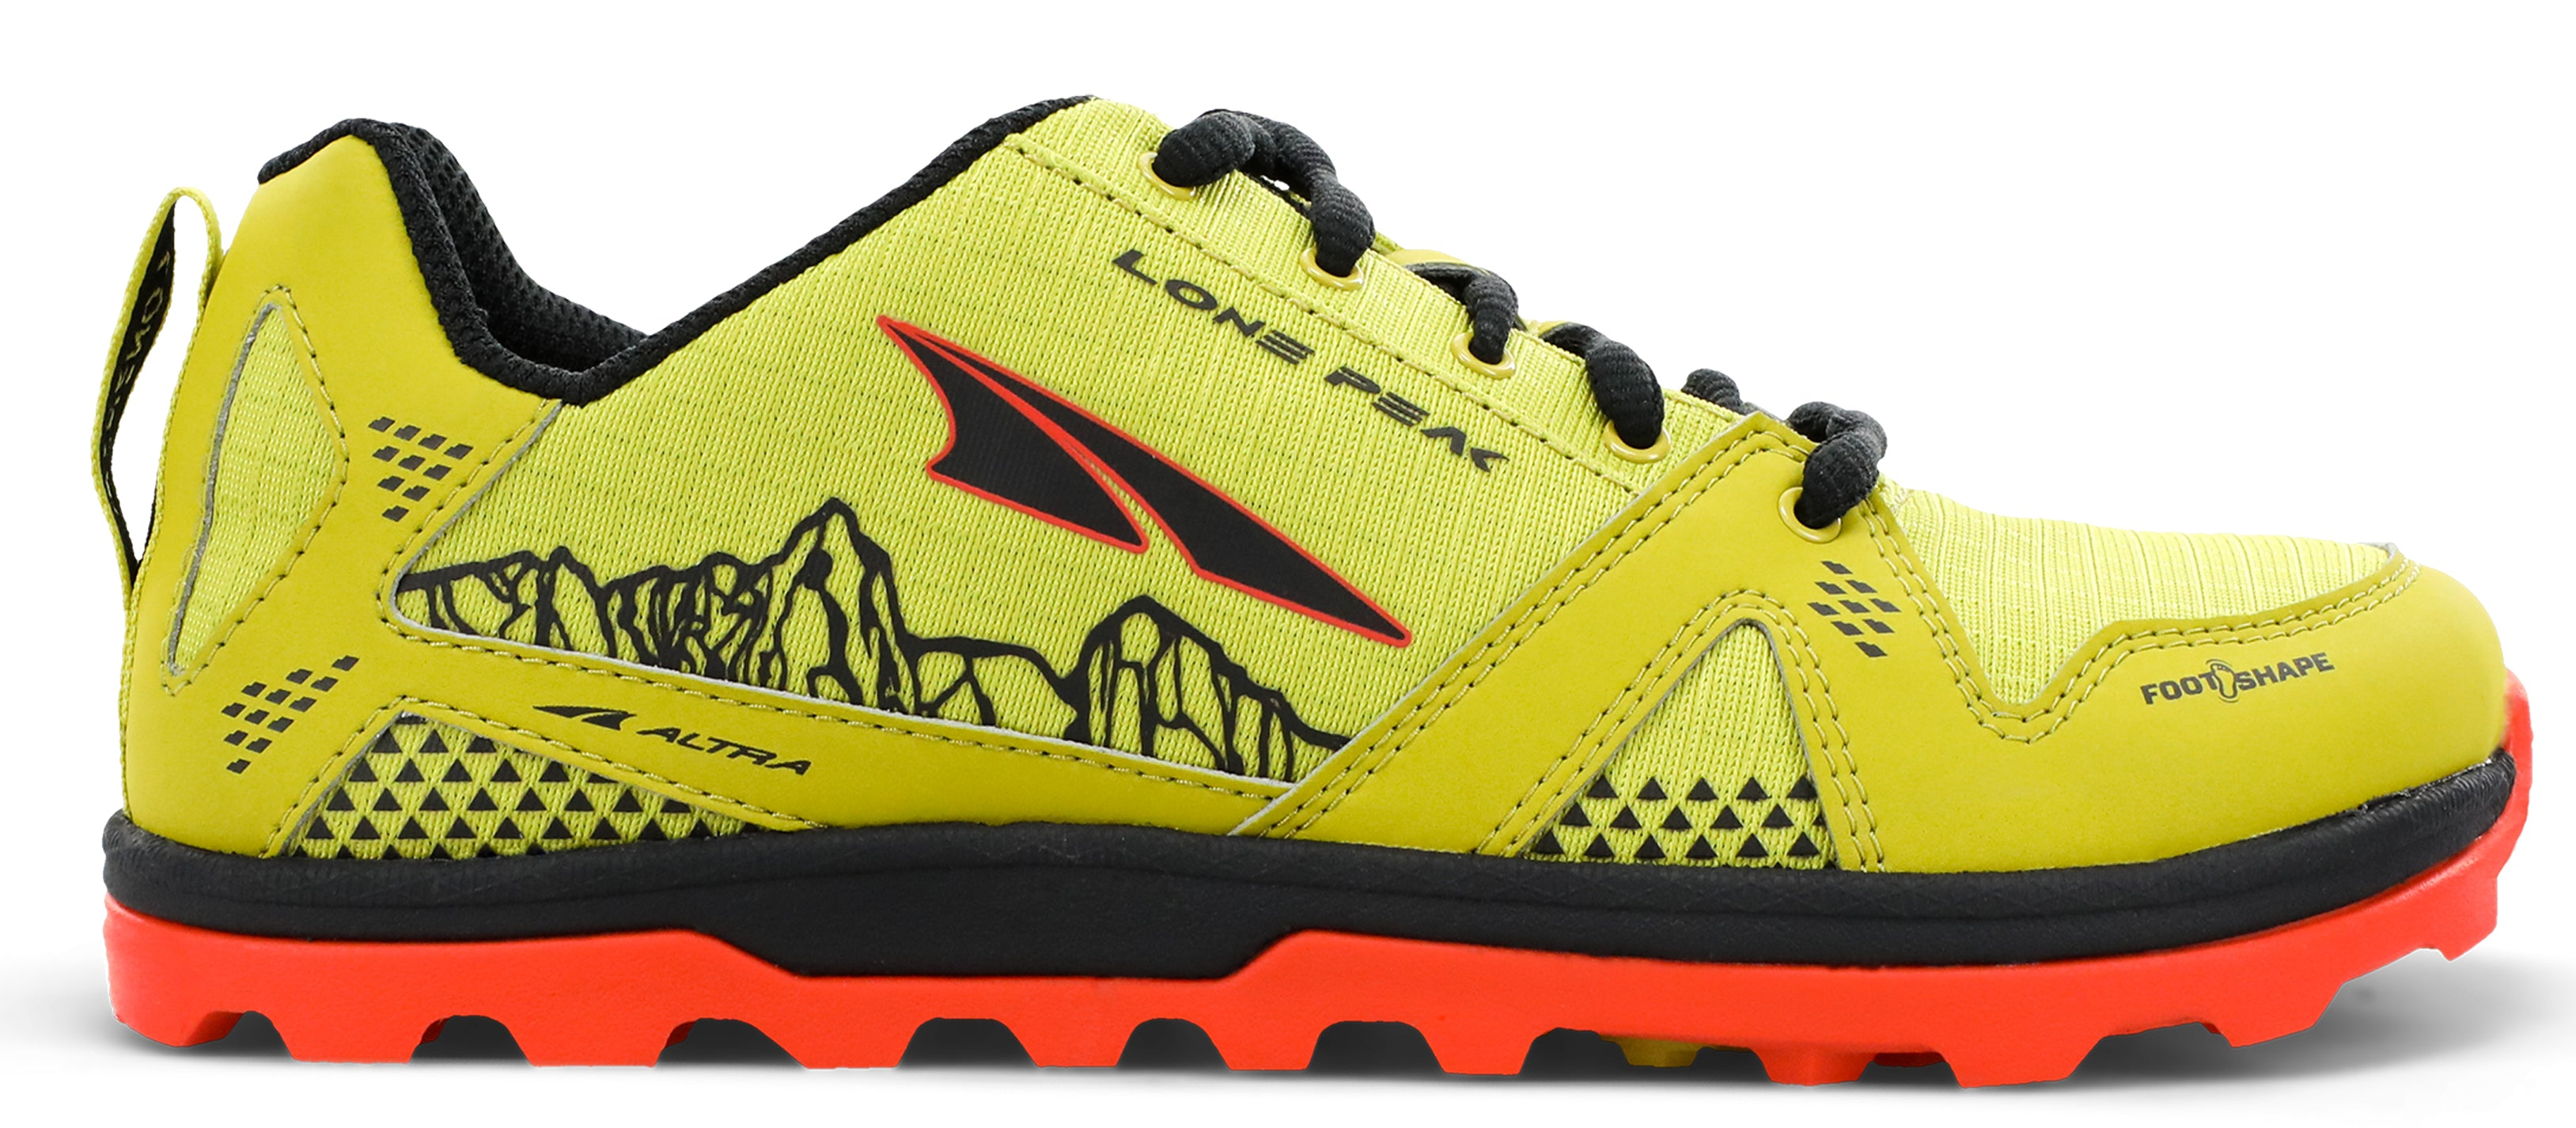 Altra Kid's Youth Lone Peak Trail Running Shoe in Lime from the side